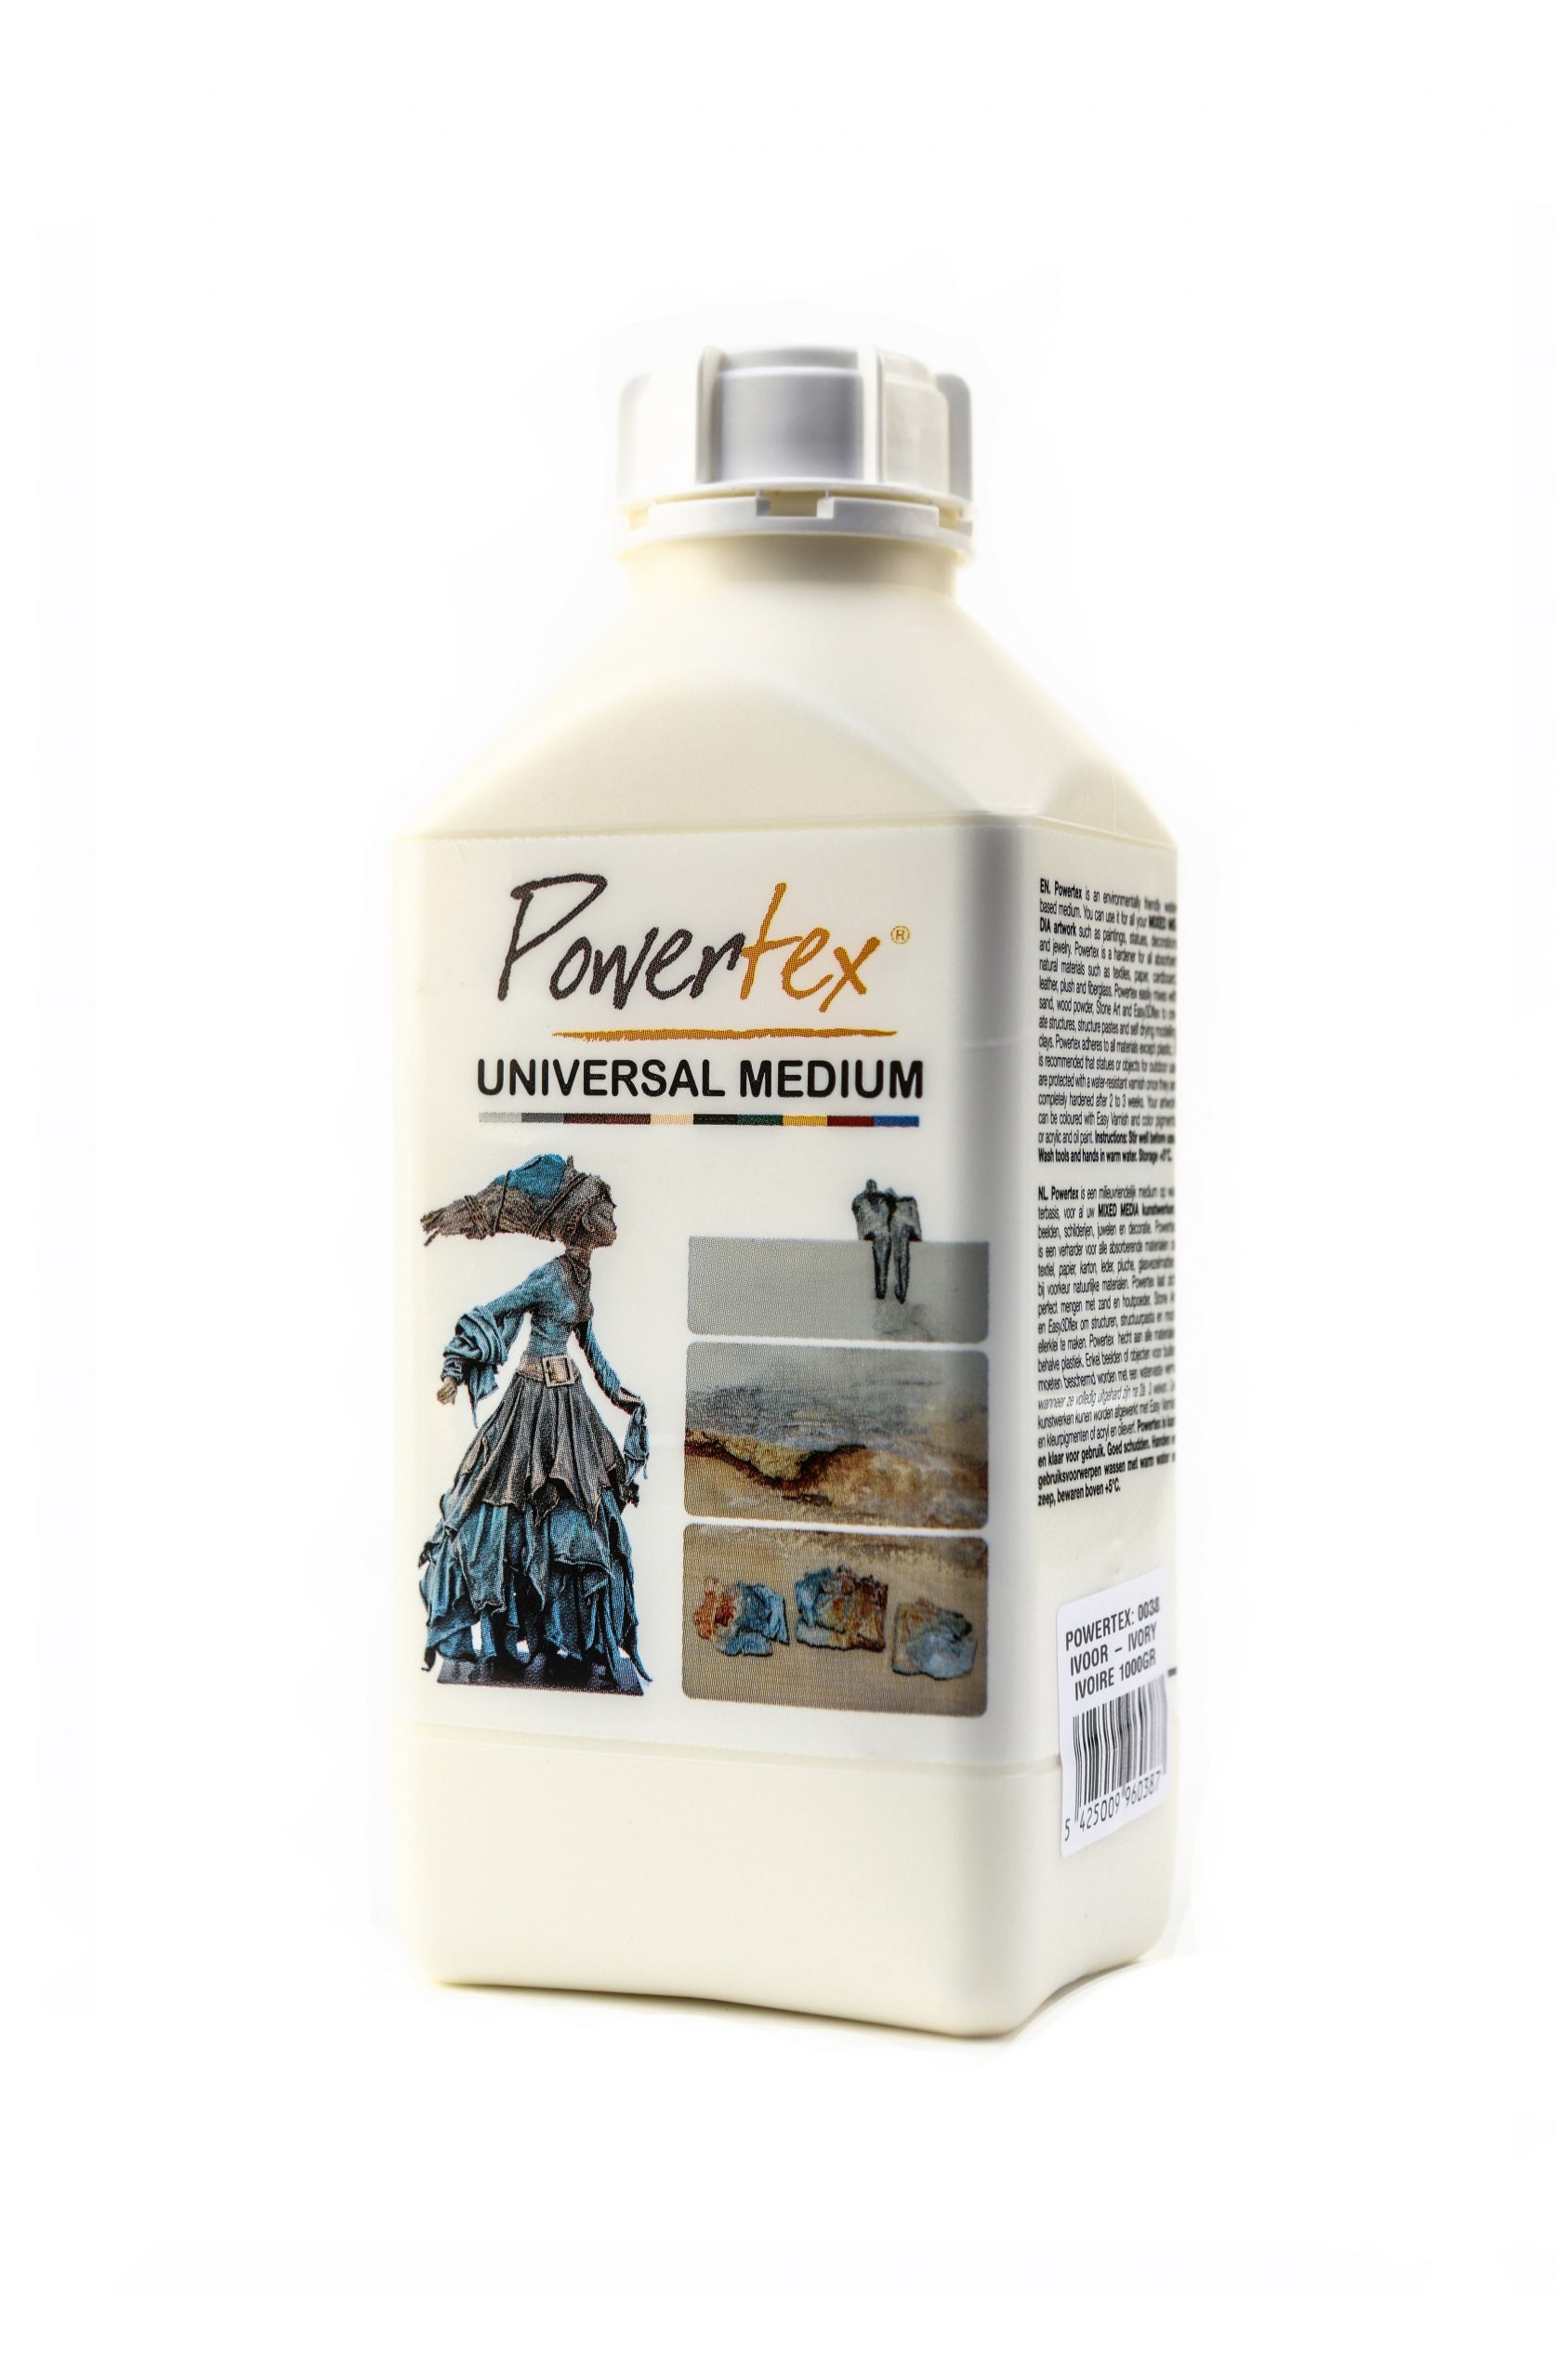 Powertex 500g